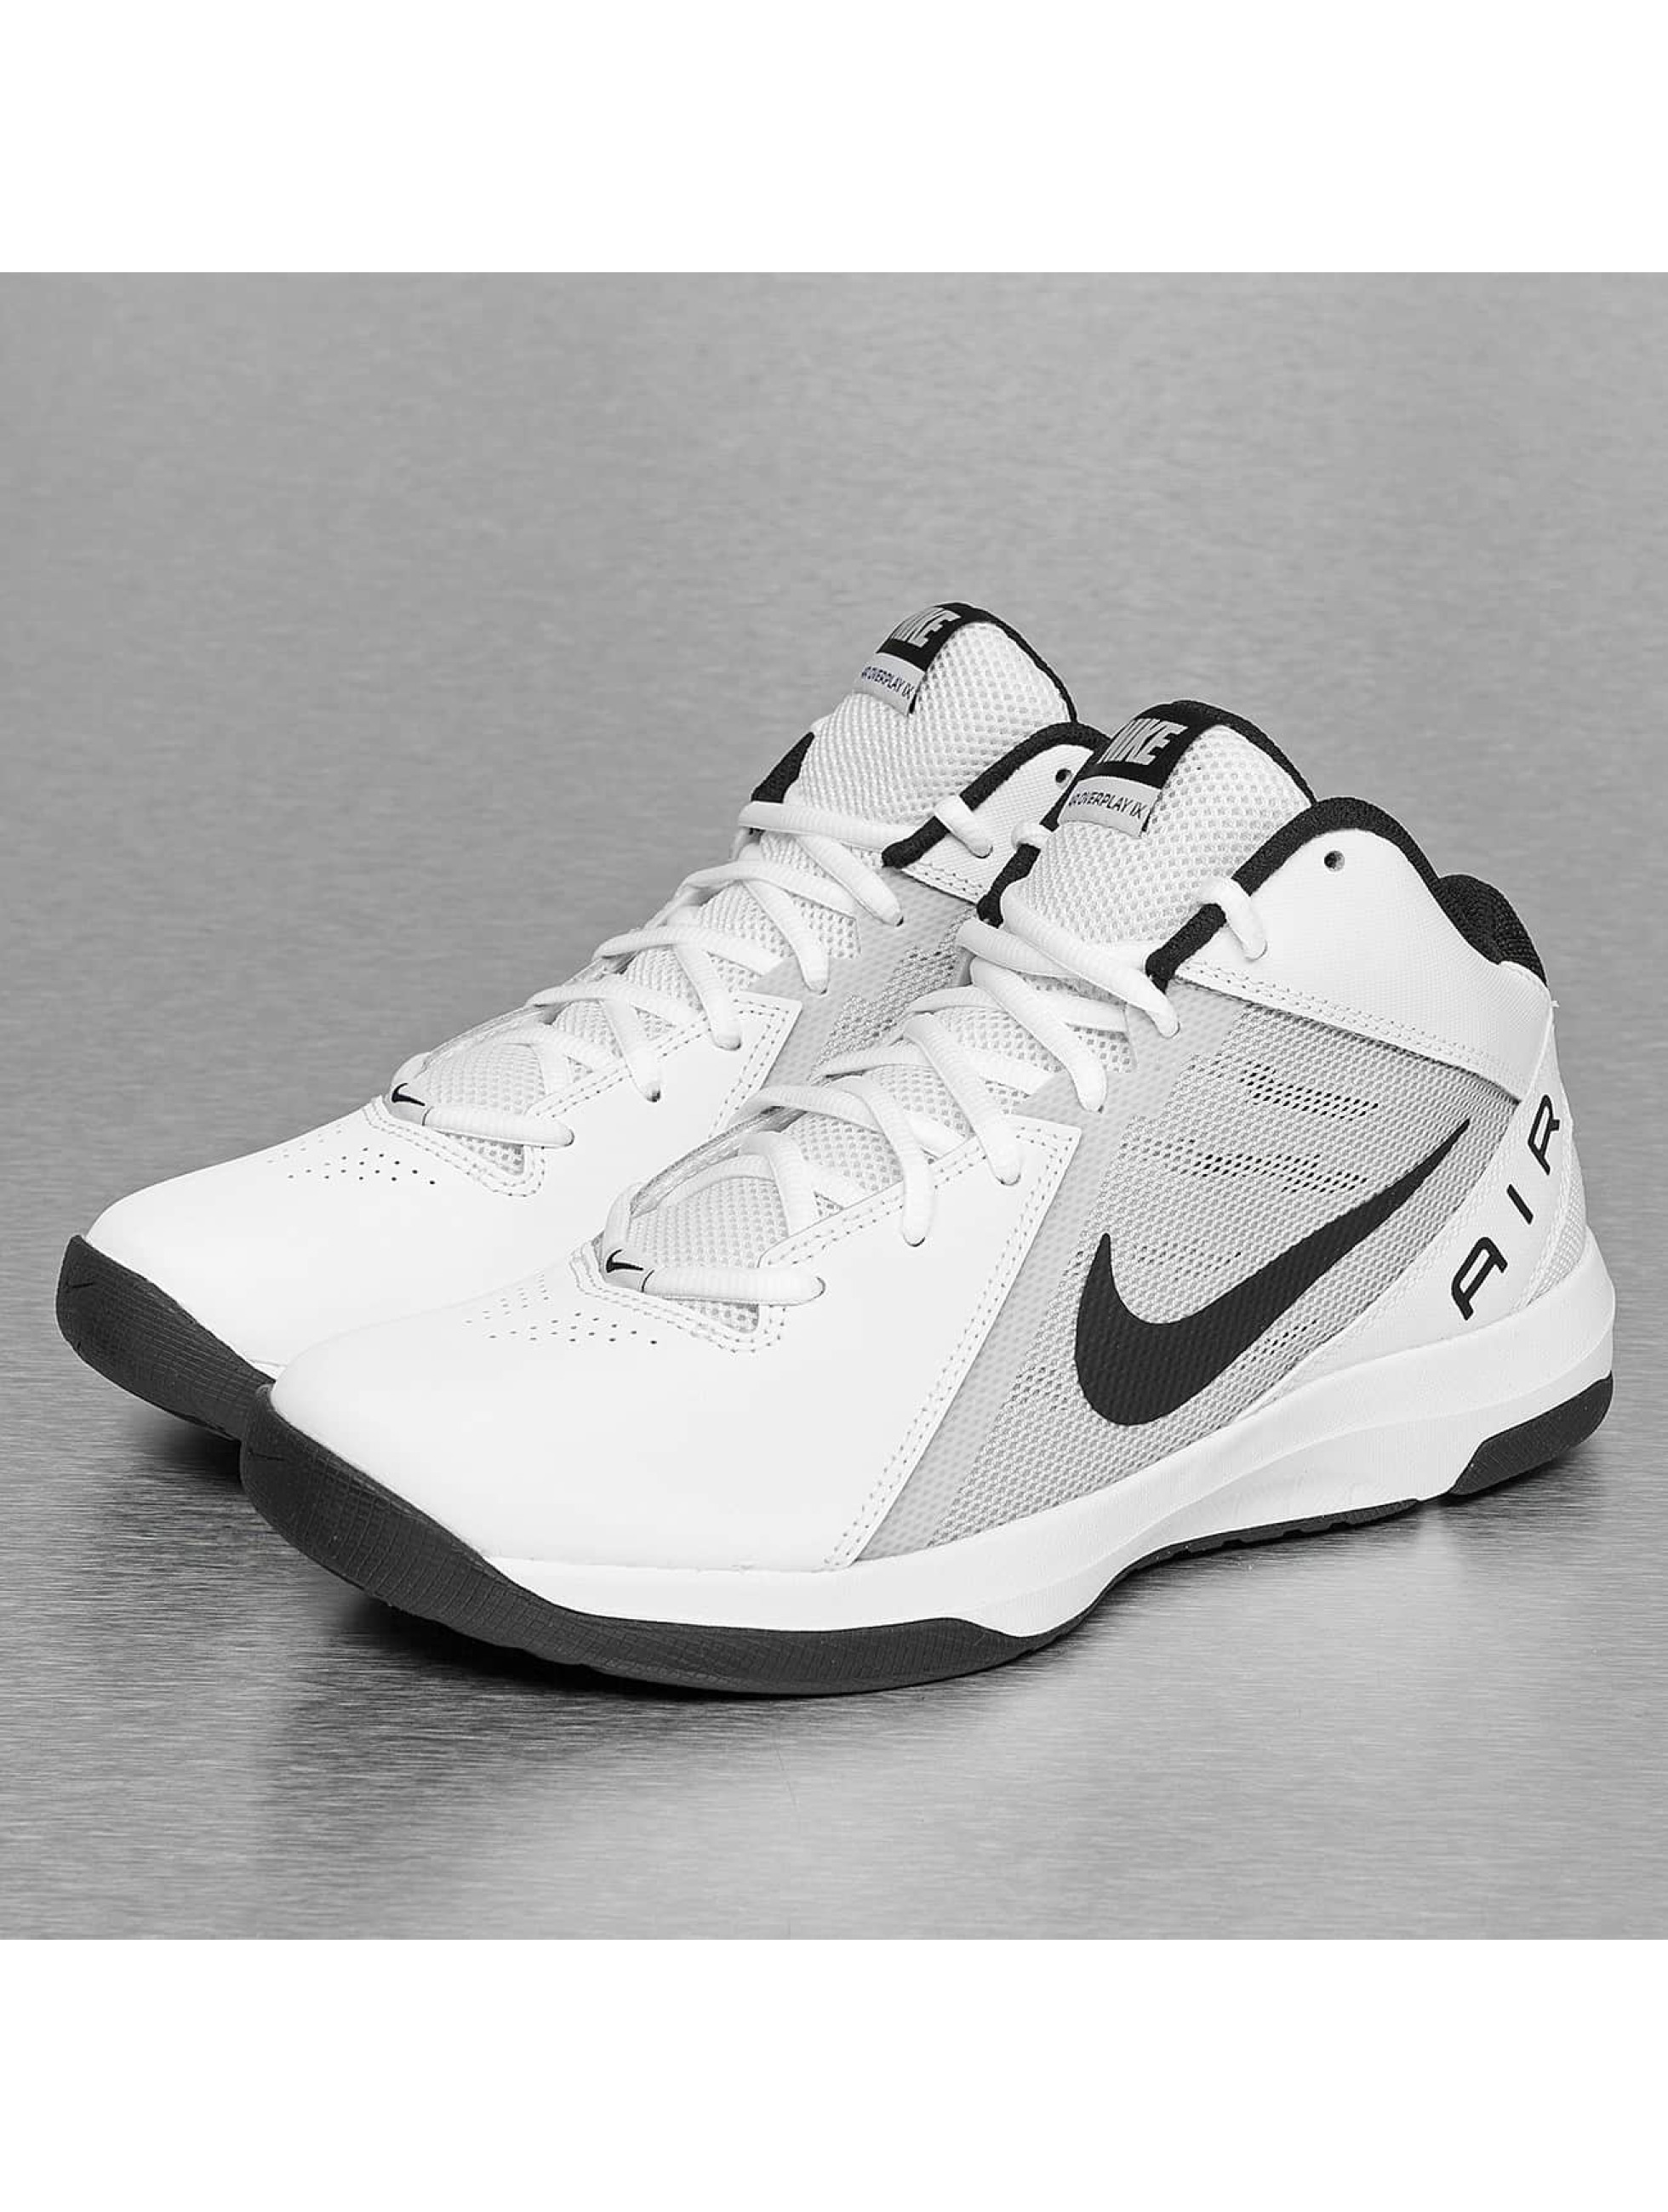 Nike schoen / sneaker The Air Overplay IX in wit